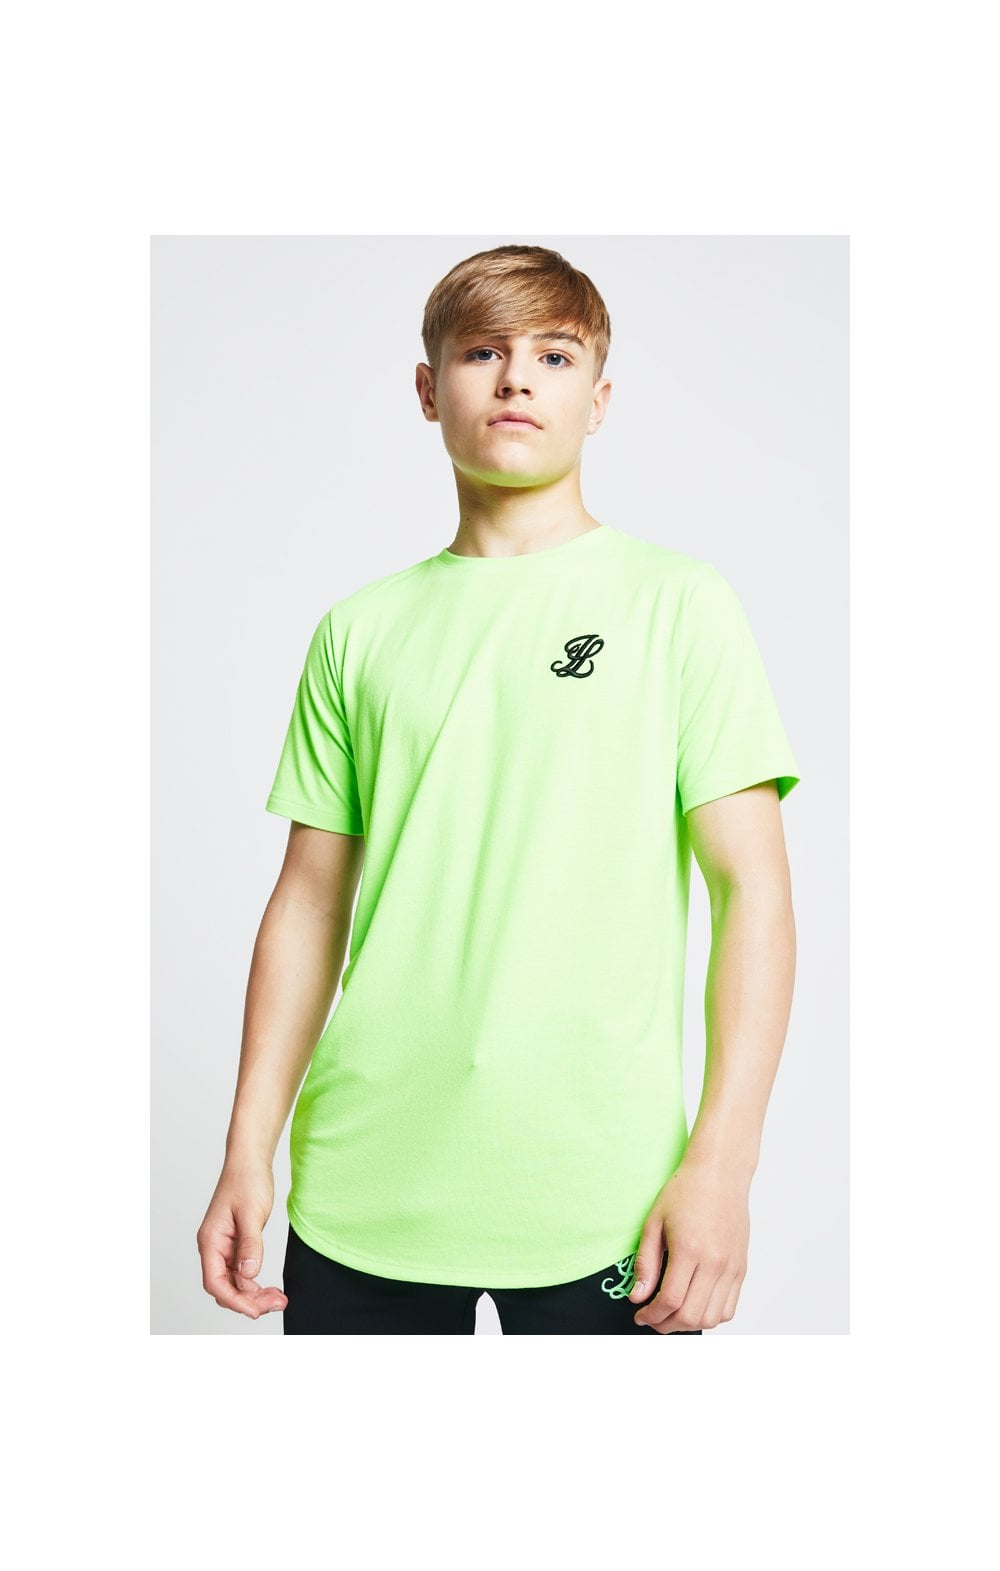 Illusive London S/S Taped Tee – Neon Green (2)